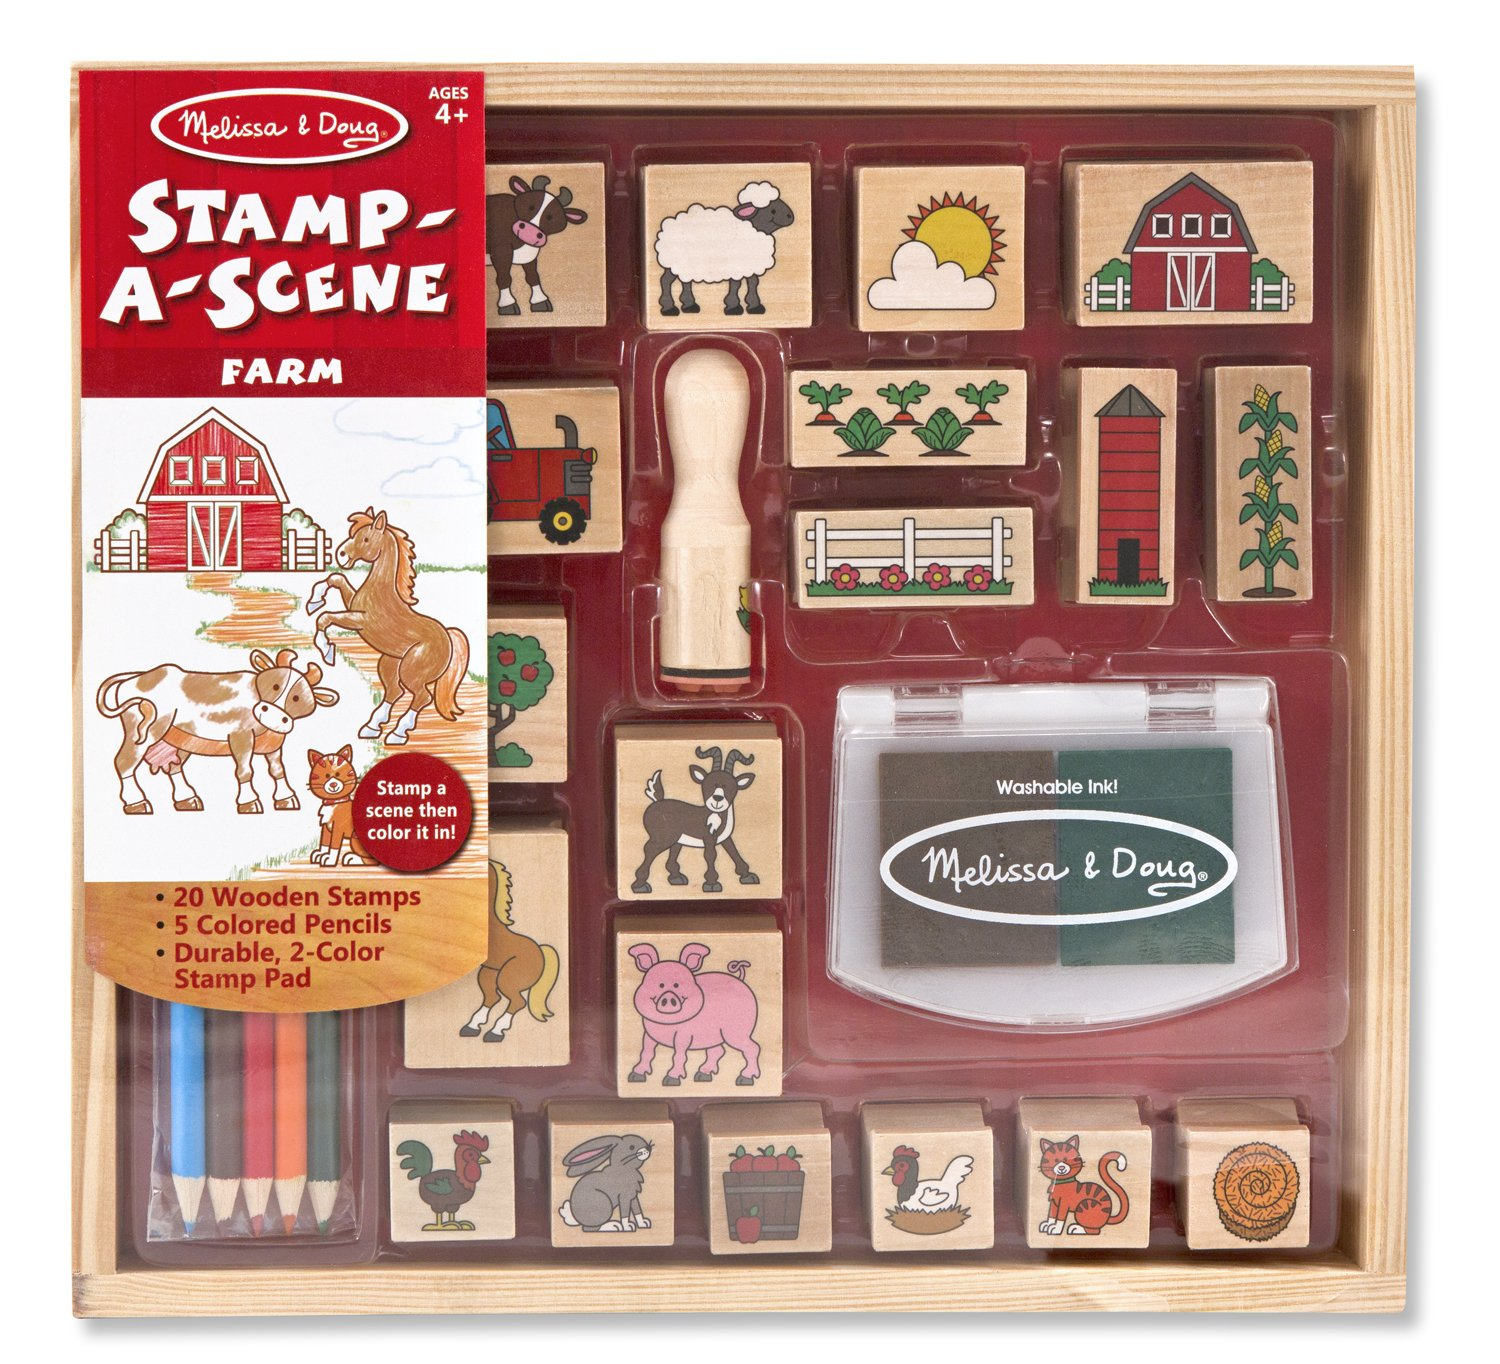 Where to buy stamps -  Melissa Doug Stamp A Scene Wooden Set Farm 20 Stamps 5 Colored Pencils And 2 Color Stamp Pad